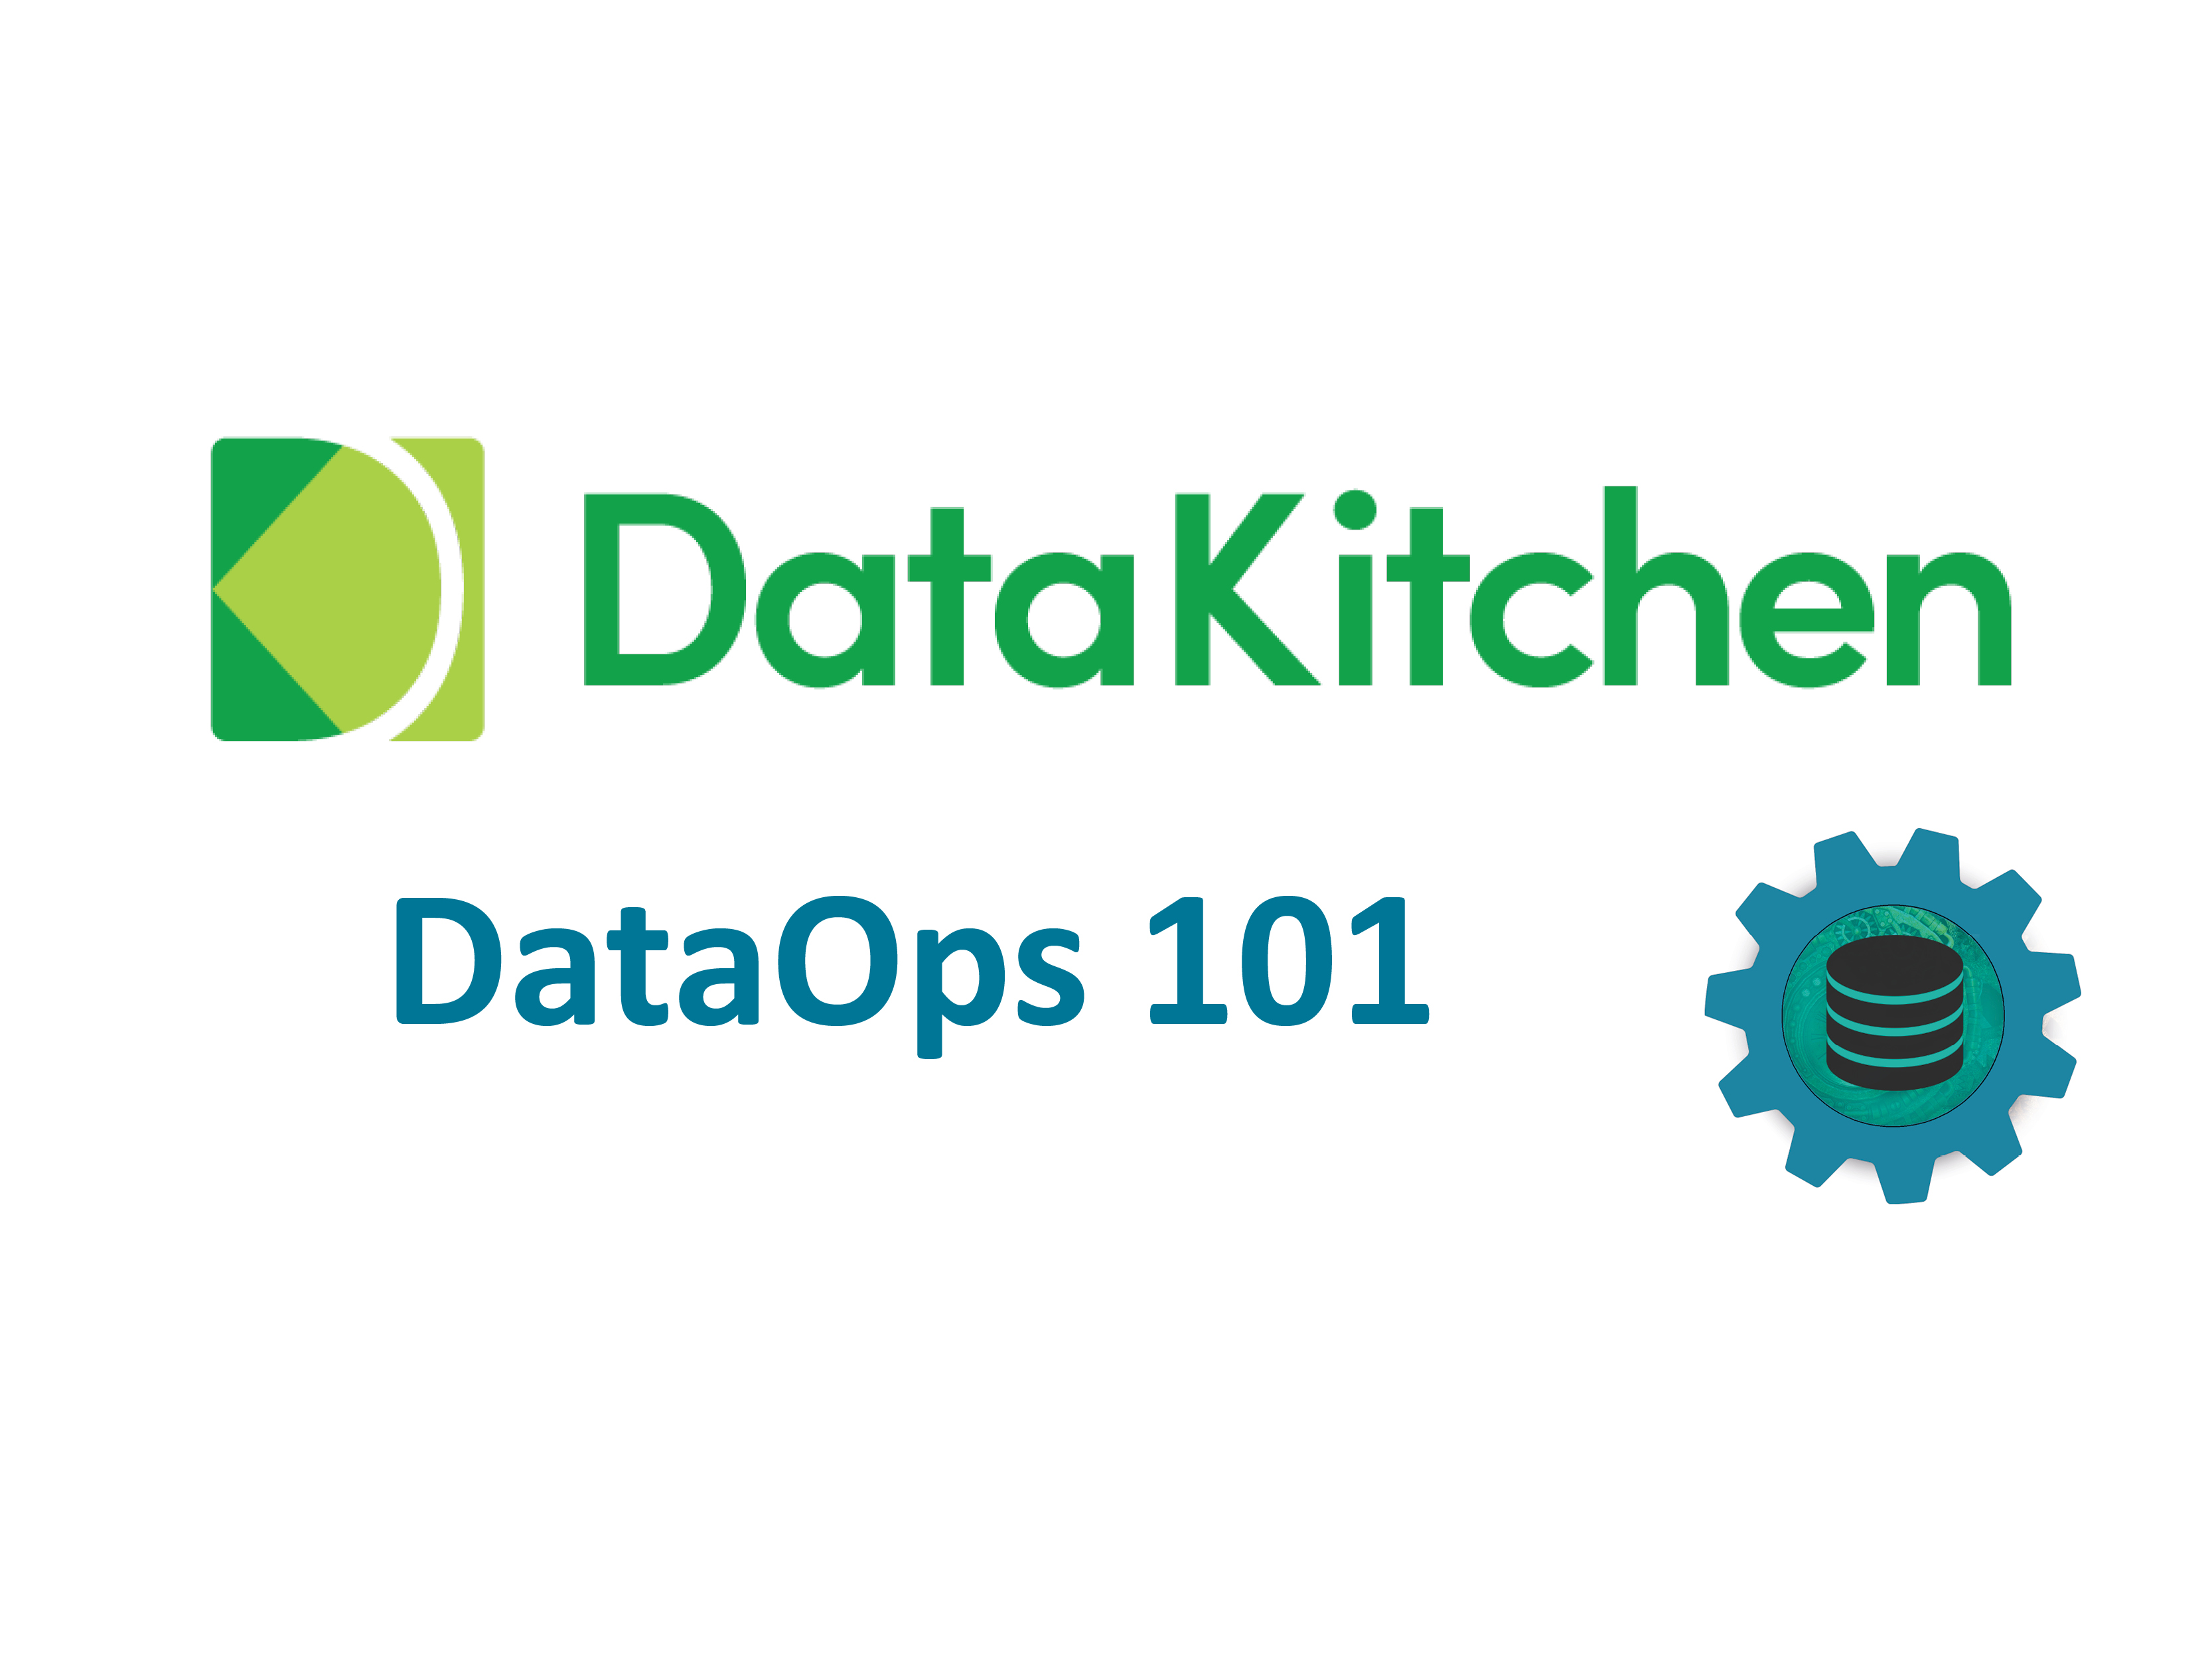 DataKitchen's DataOps 101 course live on the DataOps Academy